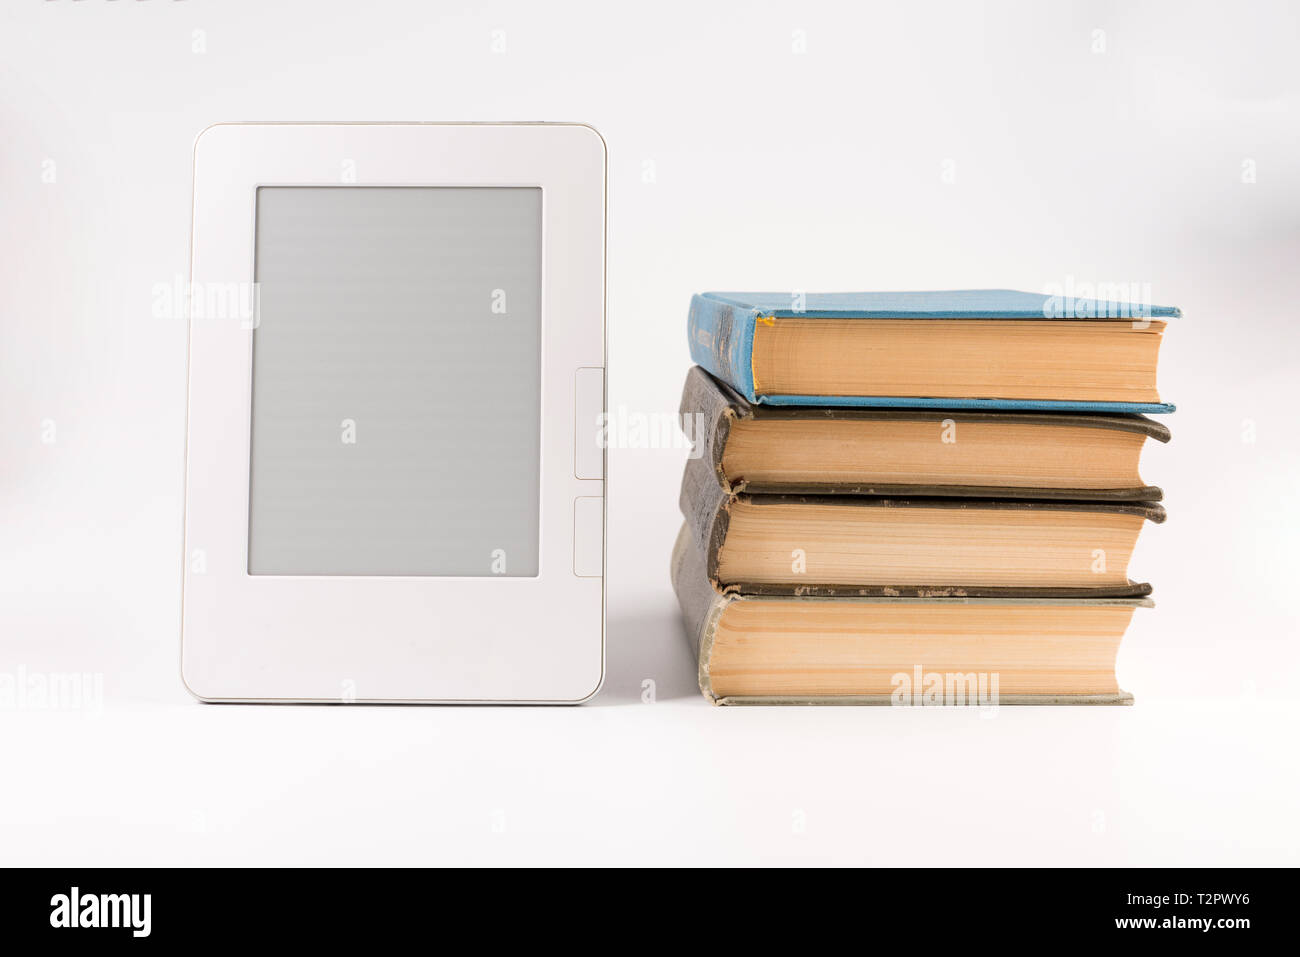 Electronic book with stack of regular old books isolated on white background - Stock Image